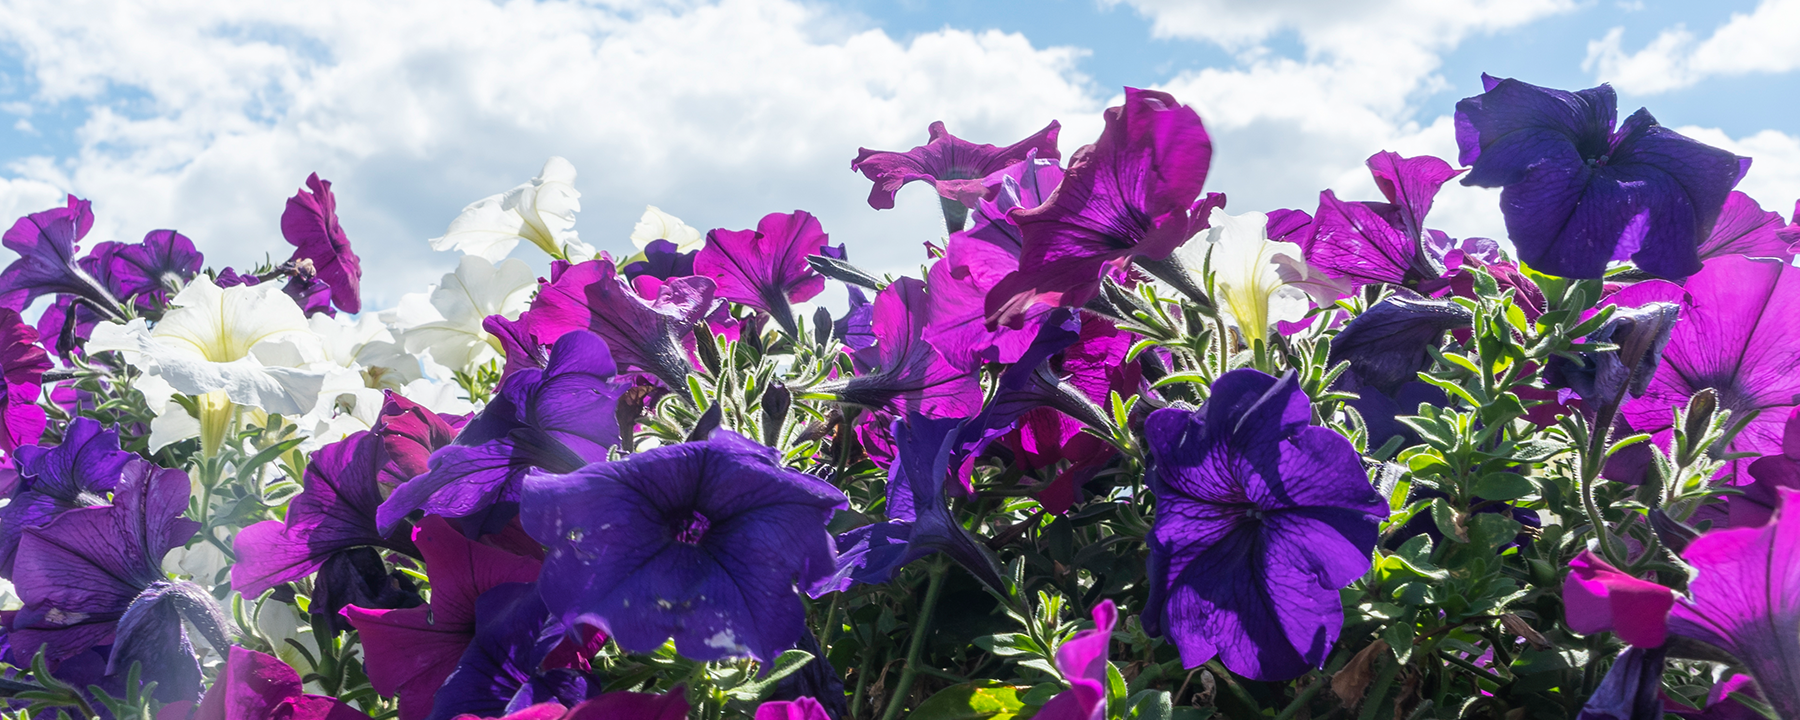 Petunia's Waxy Cuticle Regulates the Plant's Sweet Smell